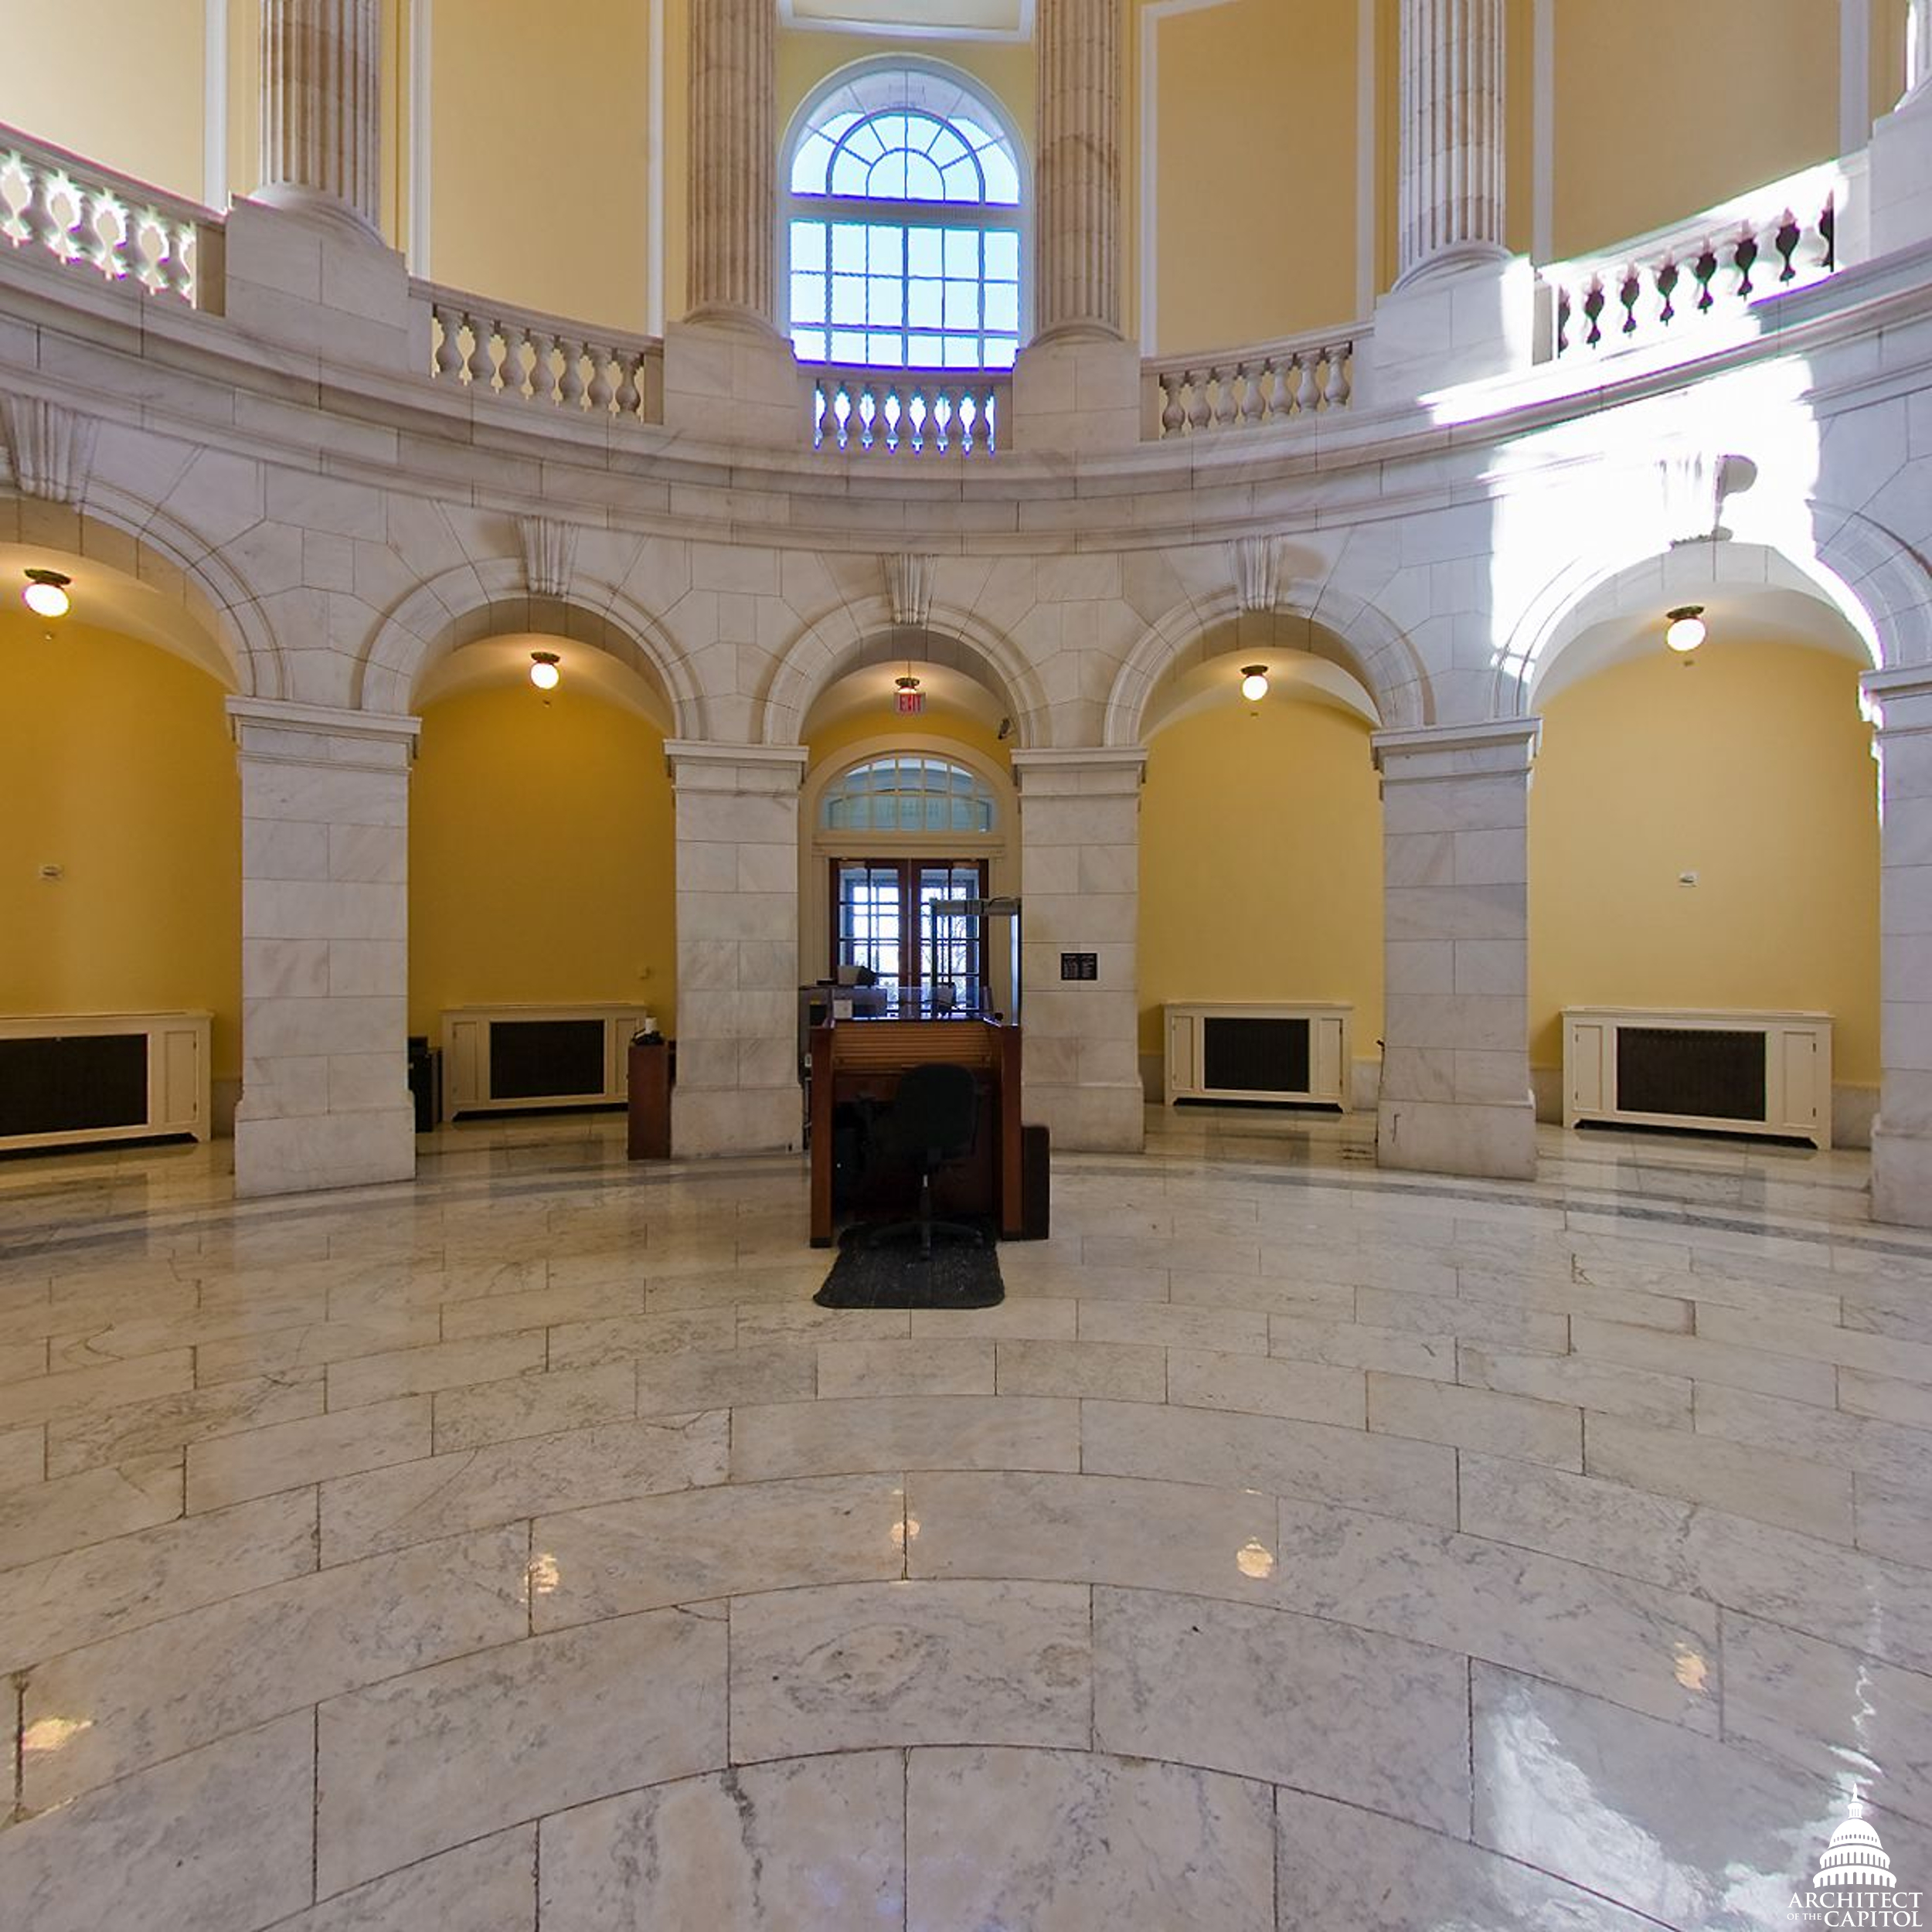 Sensational Cannon House Office Building Architect Of The Capitol United Largest Home Design Picture Inspirations Pitcheantrous